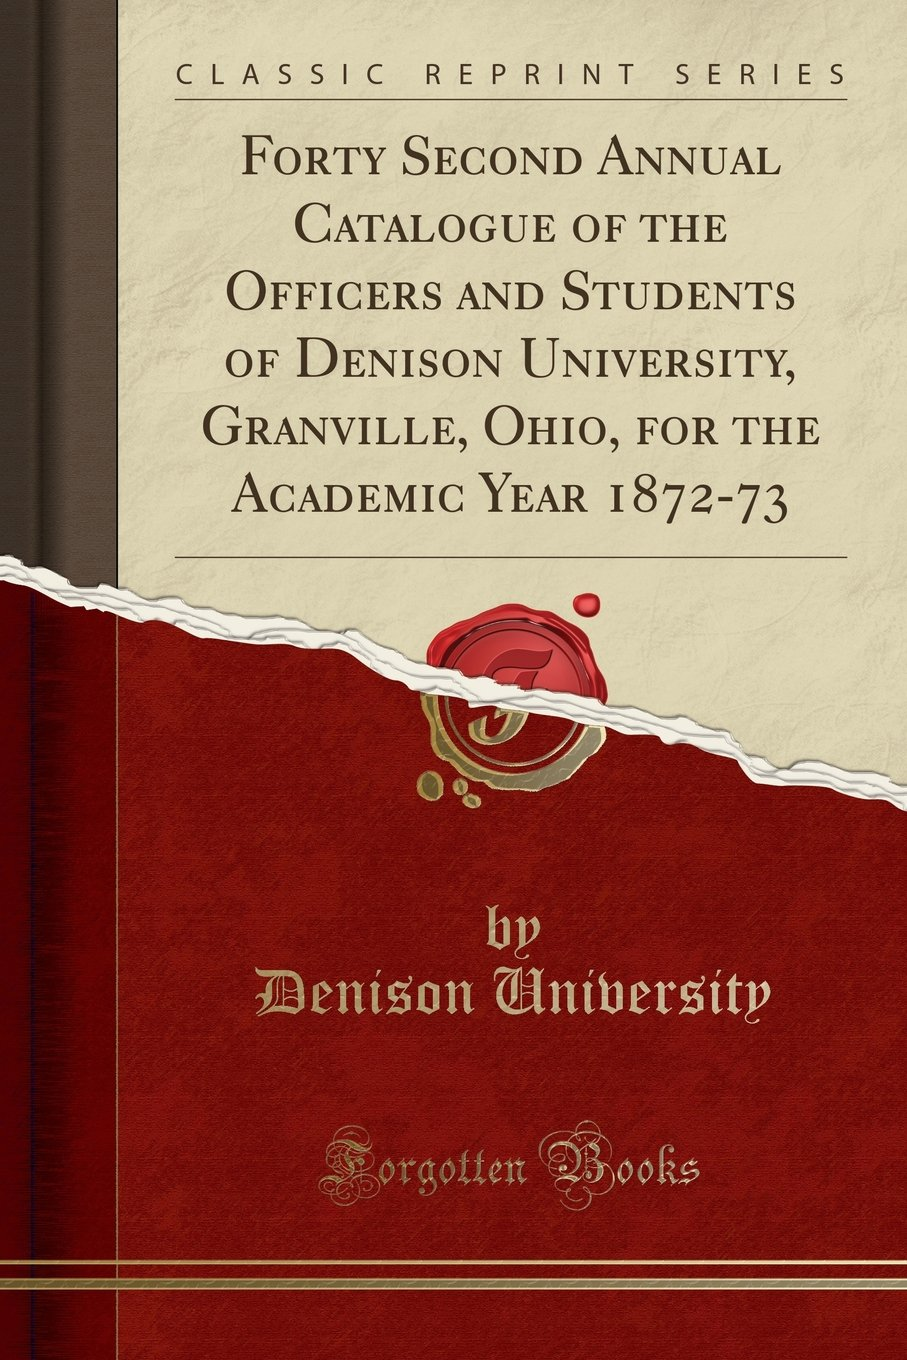 Forty Second Annual Catalogue of the Officers and Students of Denison University, Granville, Ohio, for the Academic Year 1872-73 (Classic Reprint) ebook